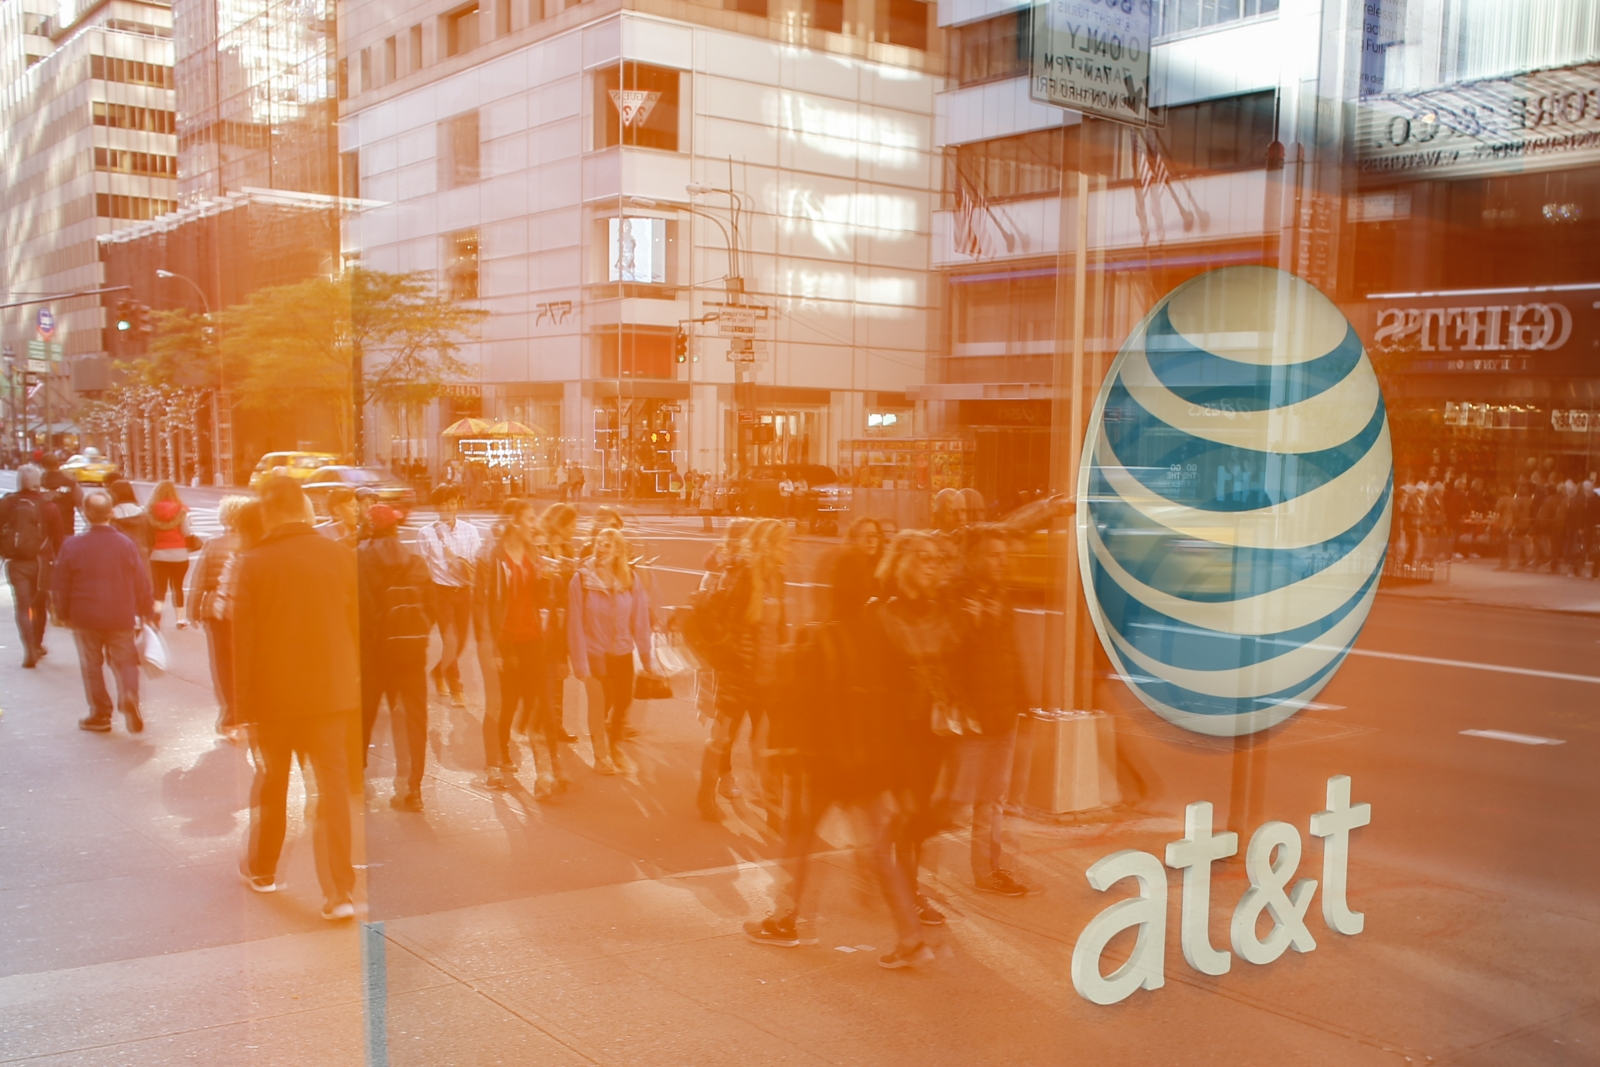 AT&T 911 outage